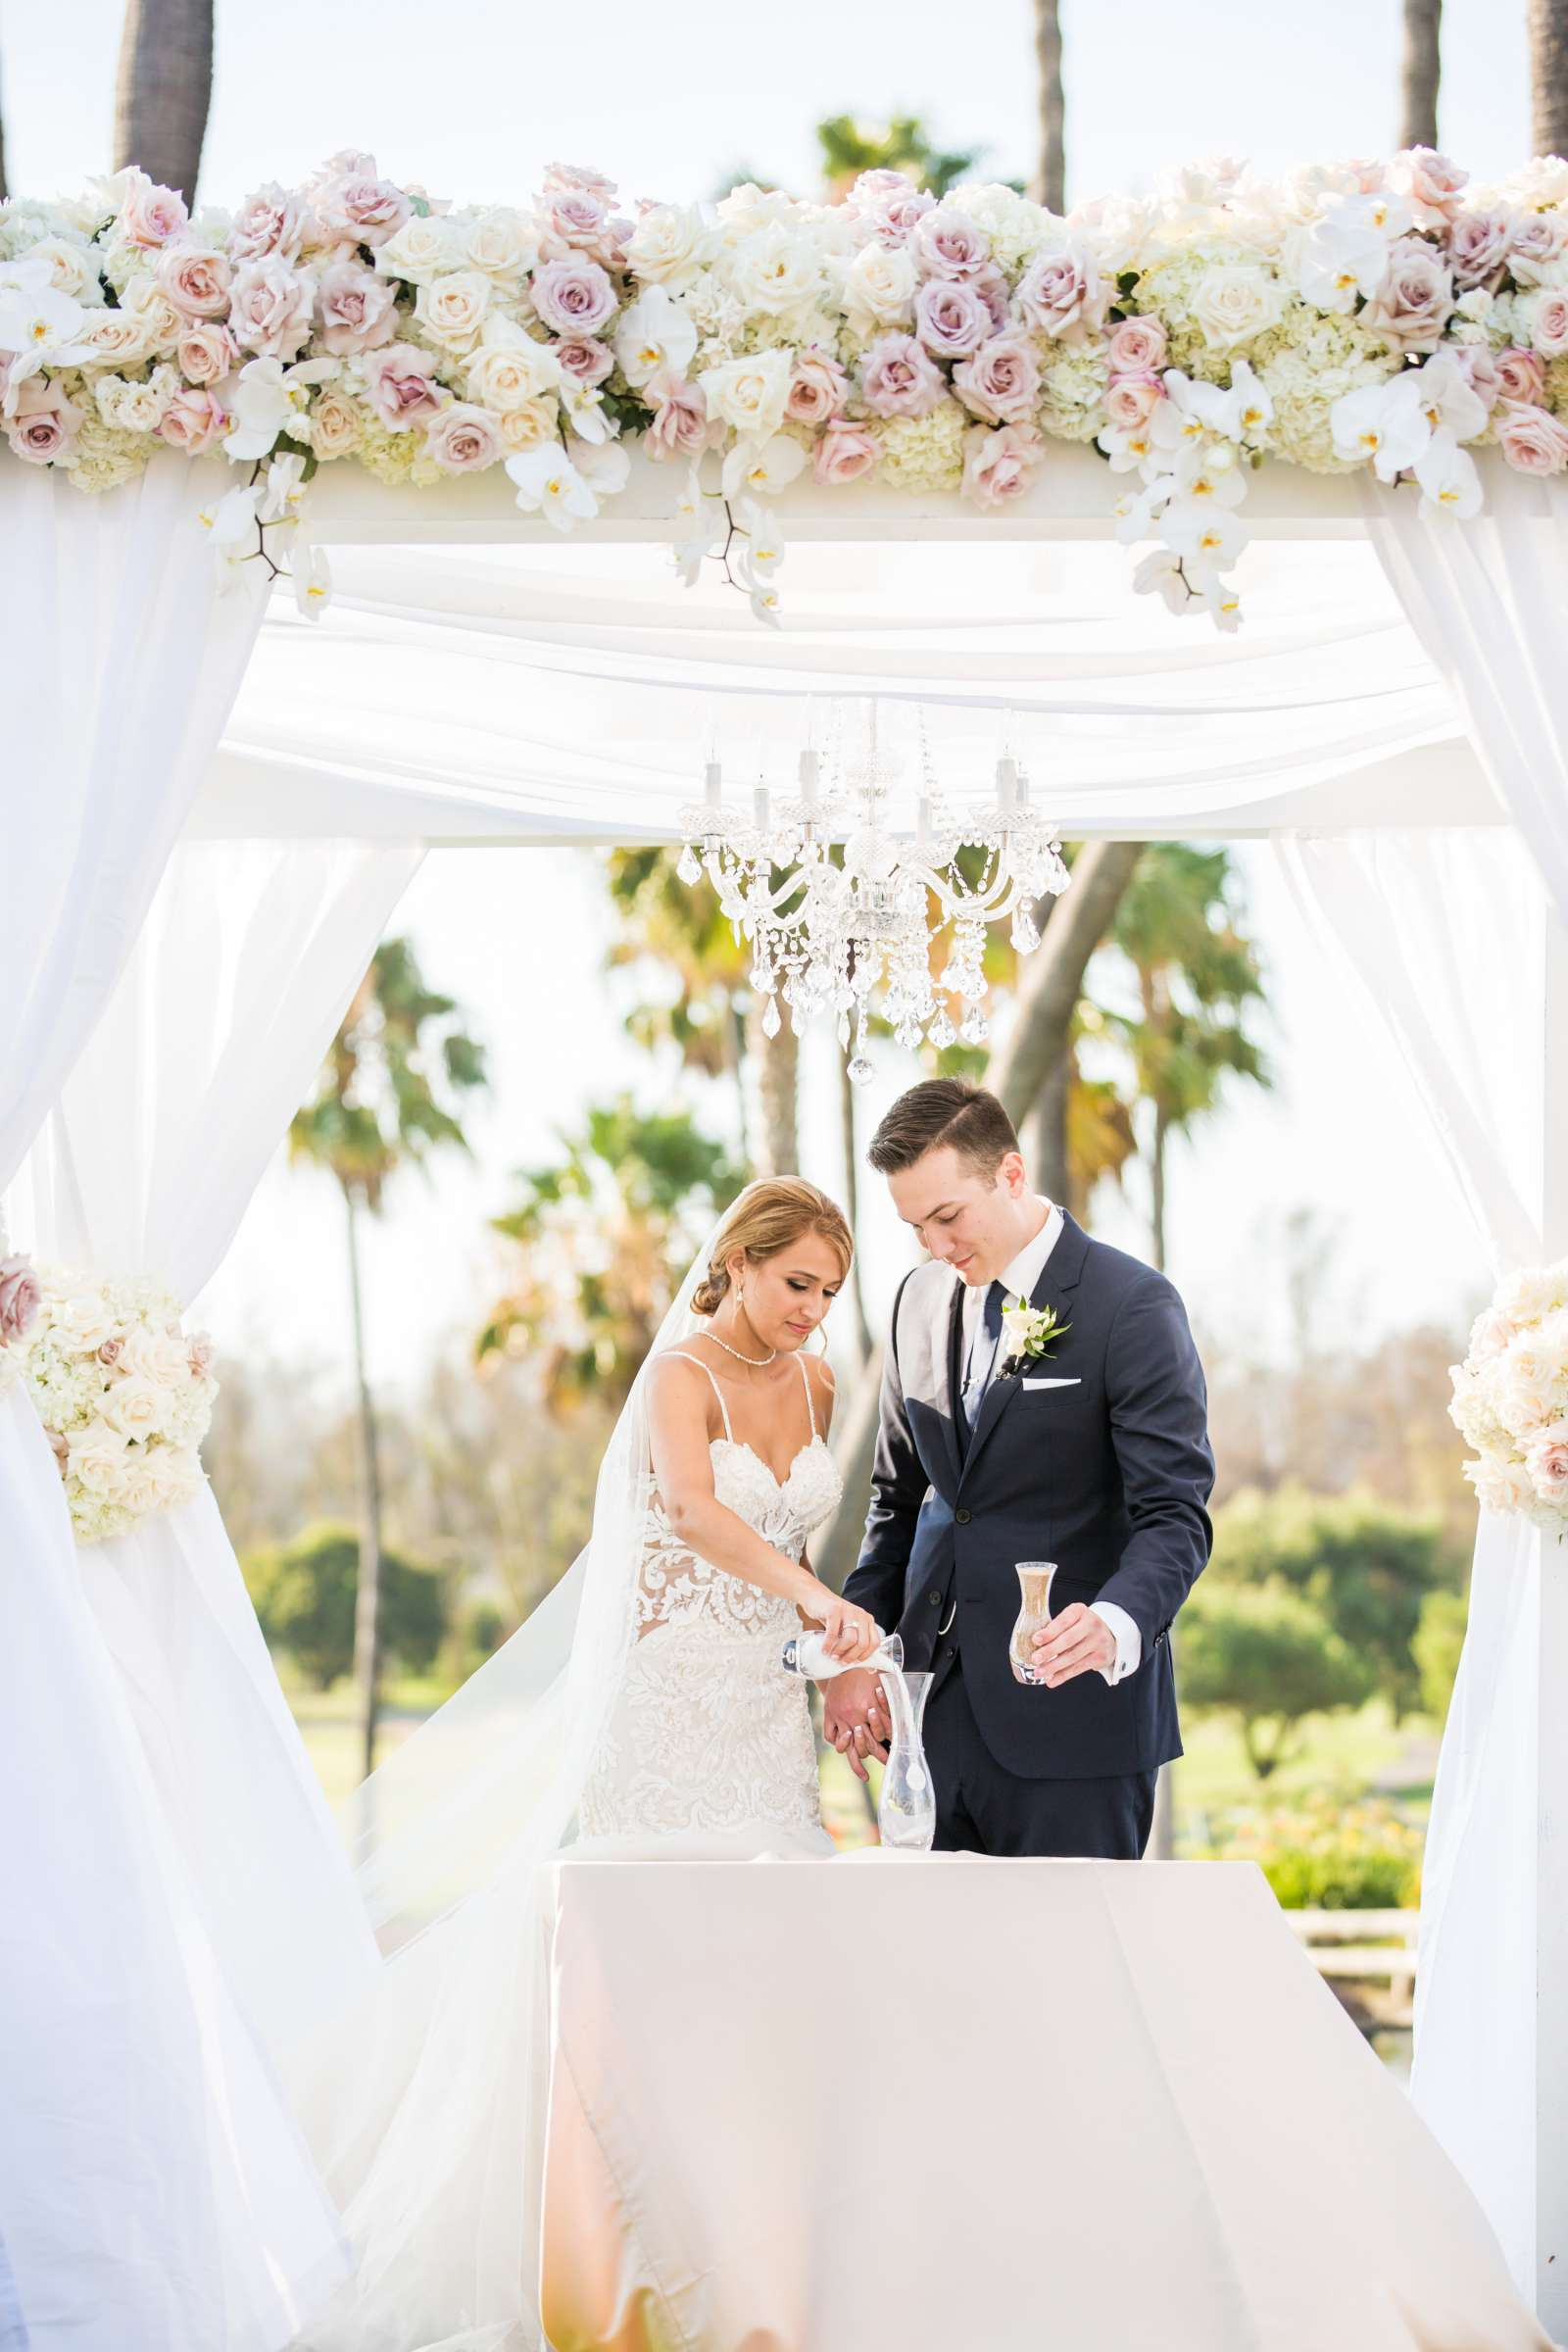 Fairbanks Ranch Country Club Wedding coordinated by Monarch Weddings, Gabriella and Kyle Wedding Photo #92 by True Photography